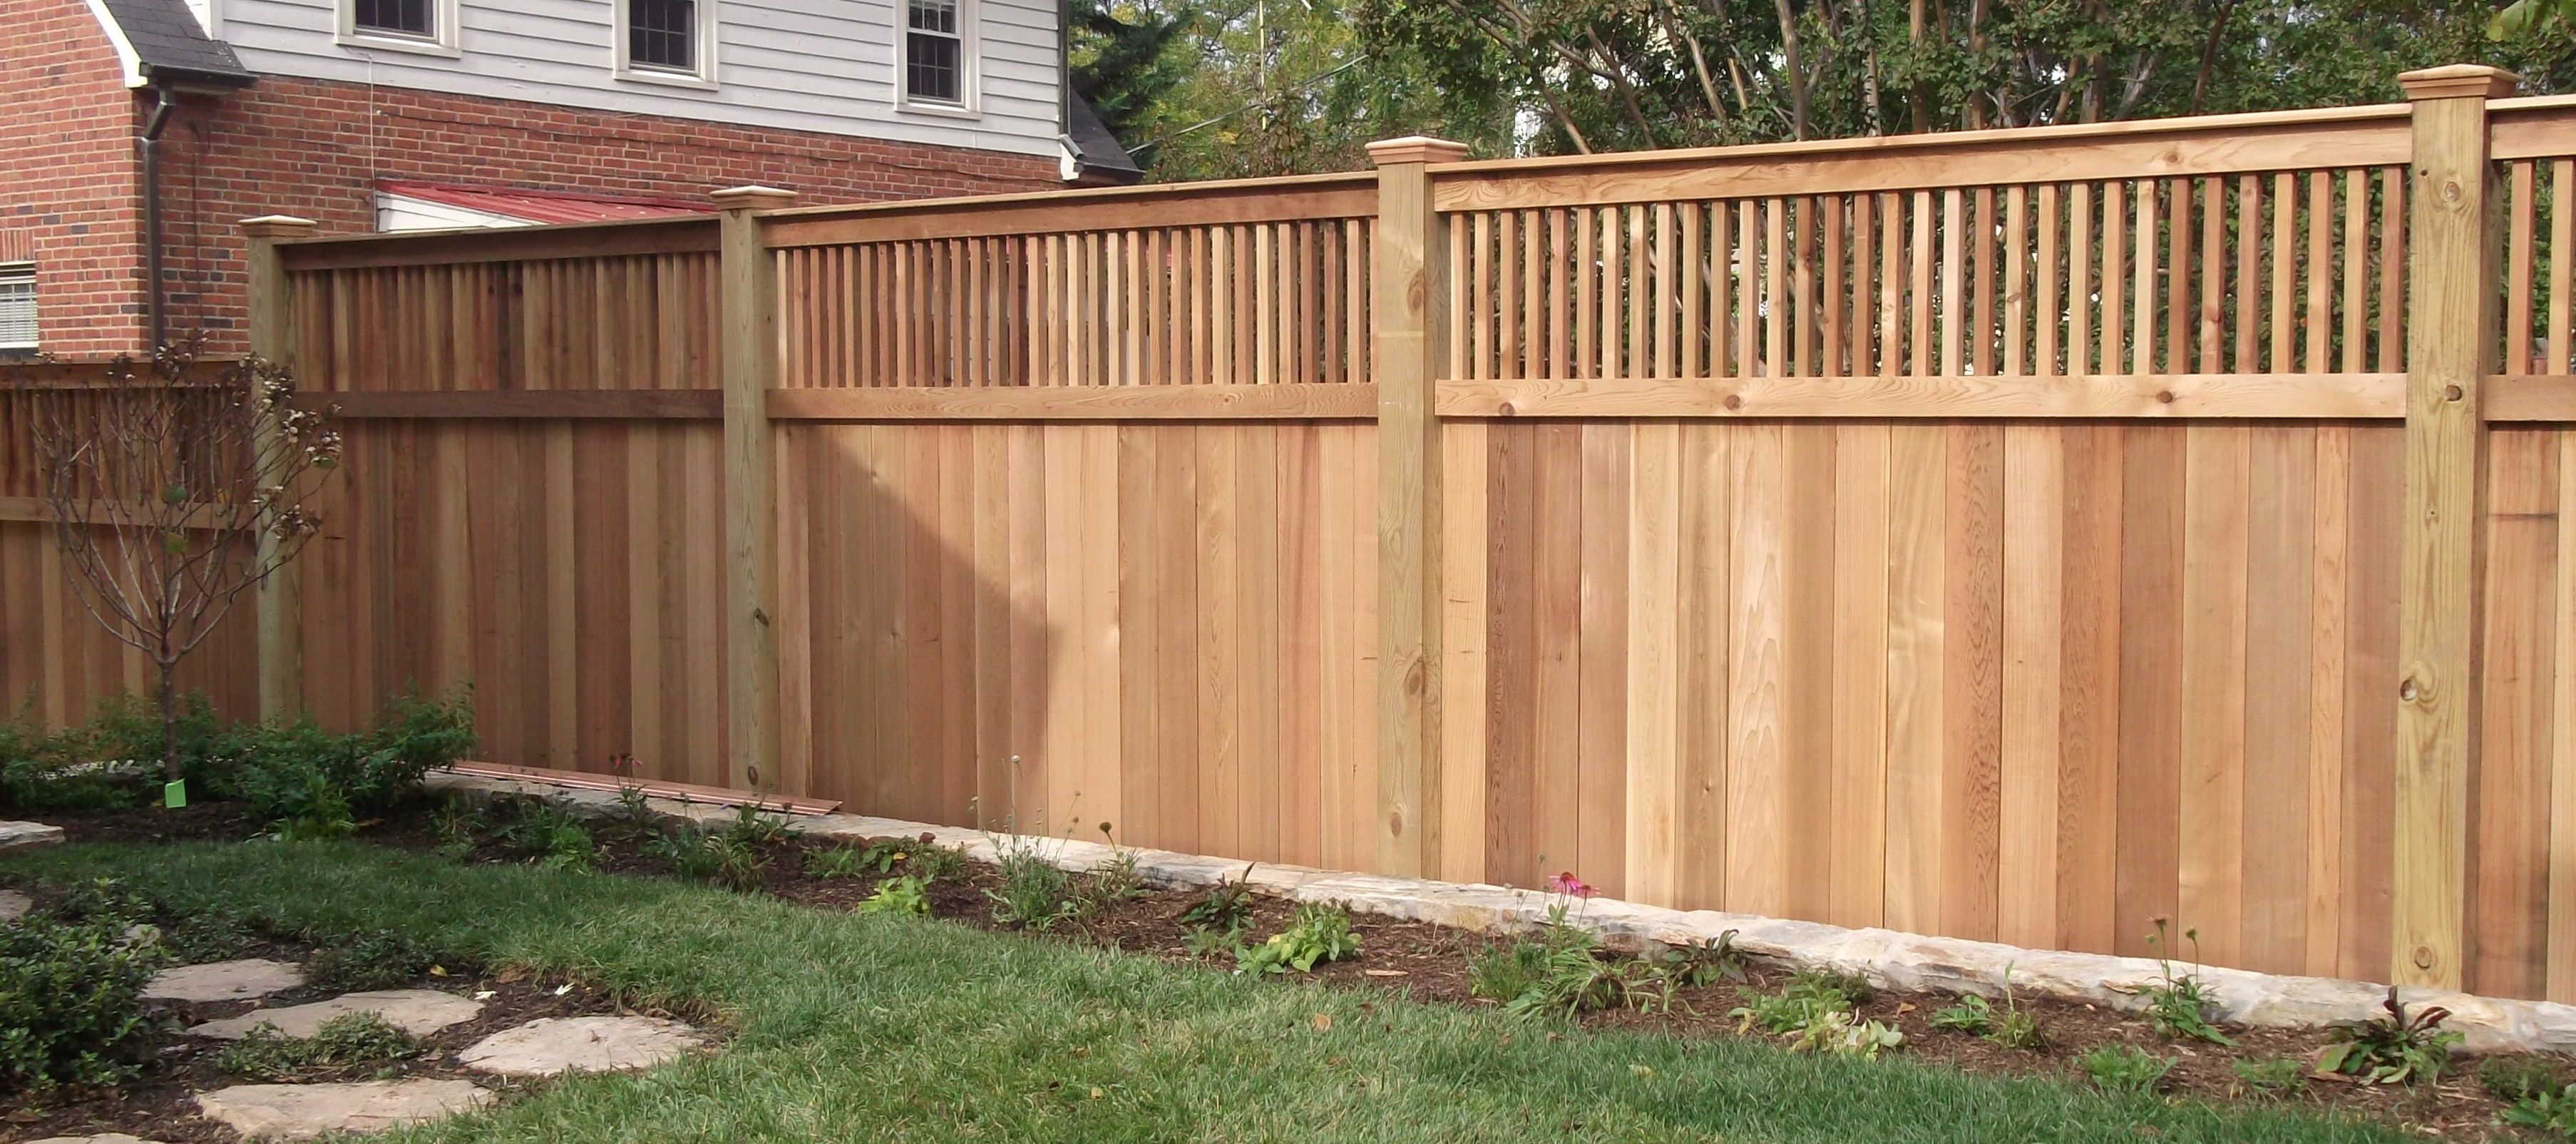 Super Privacy Fence Designs Gallery Includes Featured within 14 Genius Ways How to Build Fences For Backyards Types